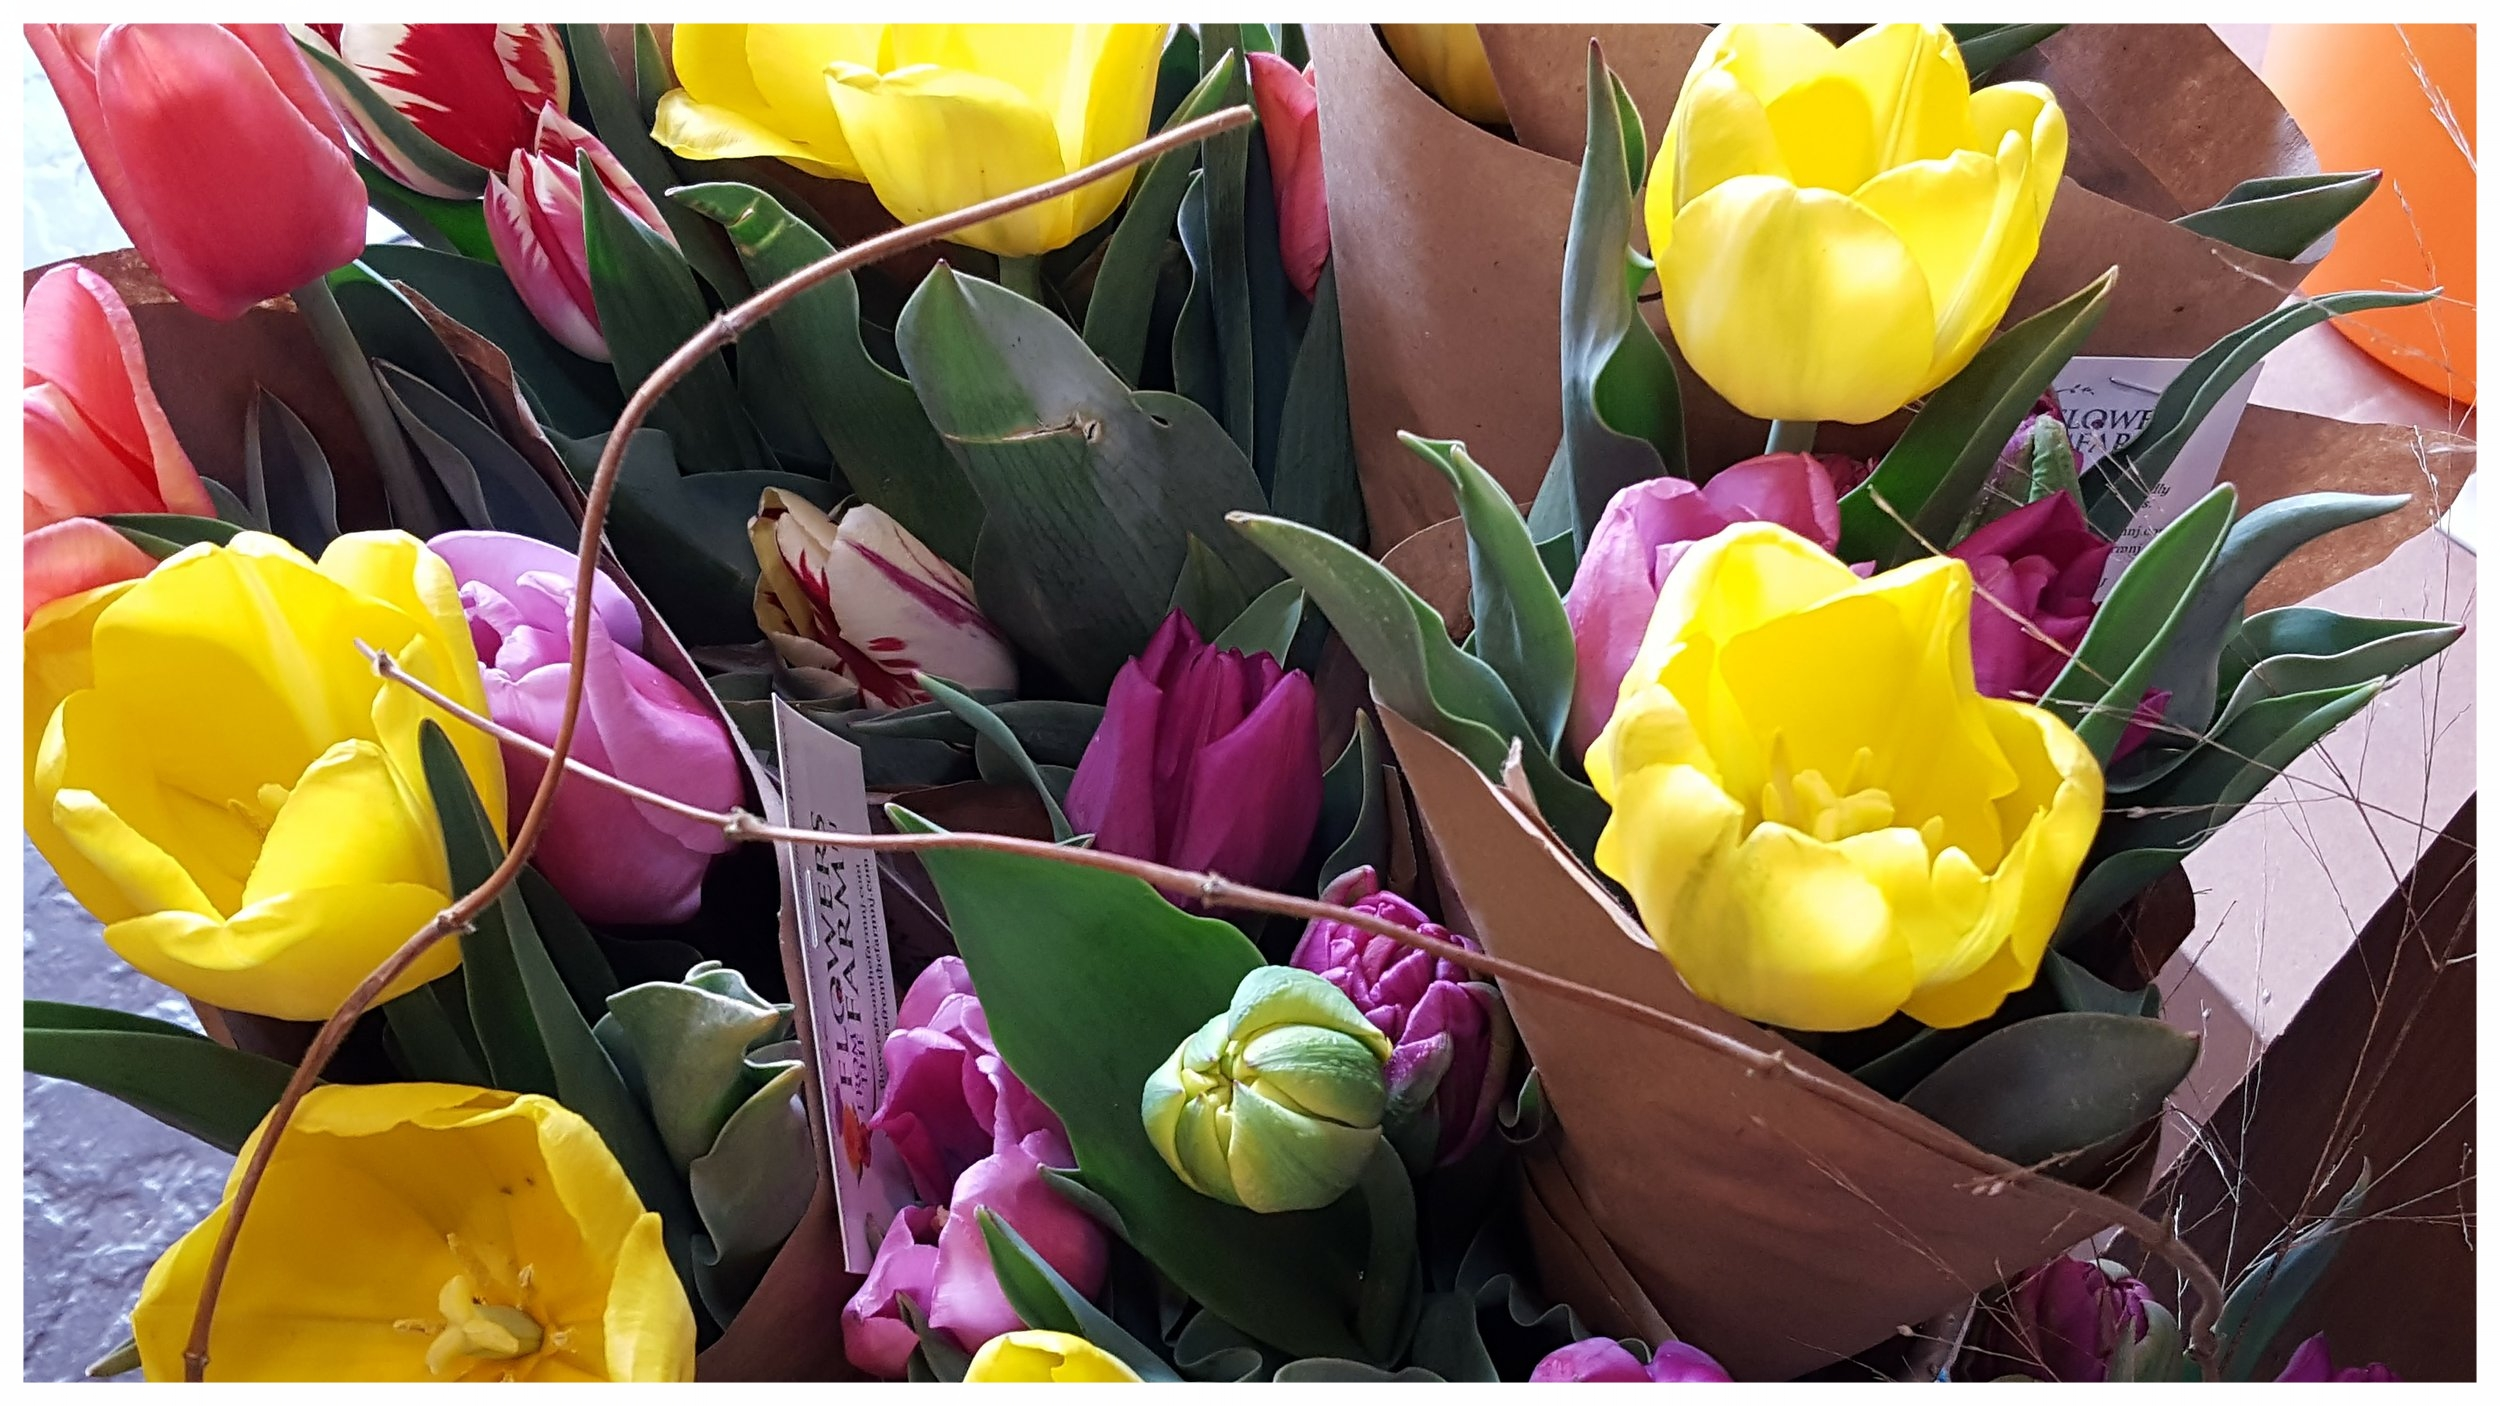 Tulips are such a delight after the long days of winter